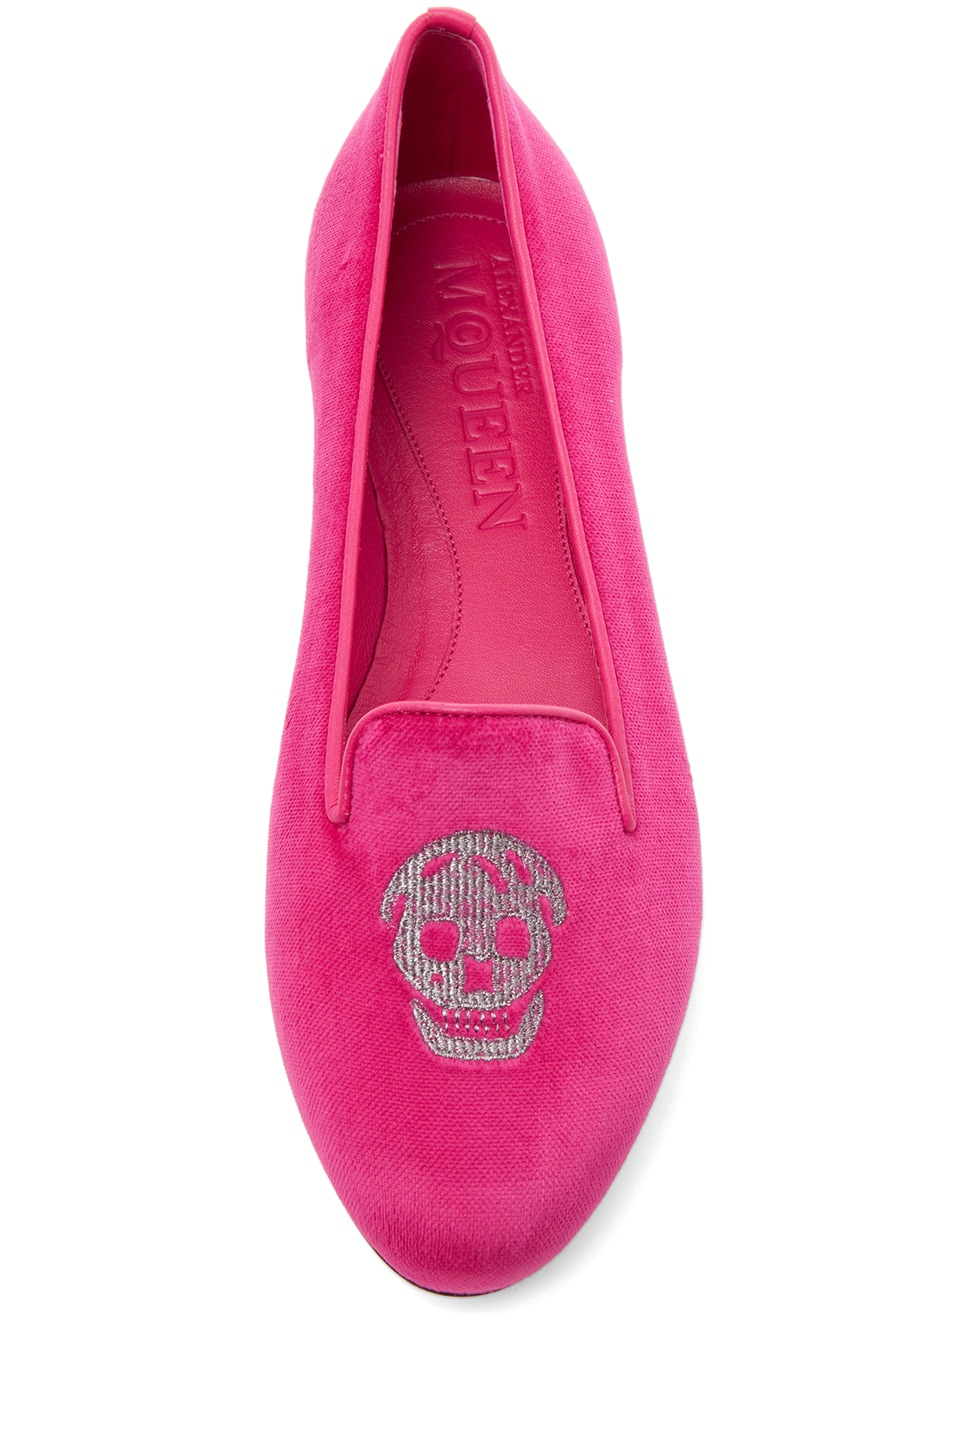 Image 4 of Alexander McQueen Velvet Slipper in Pink